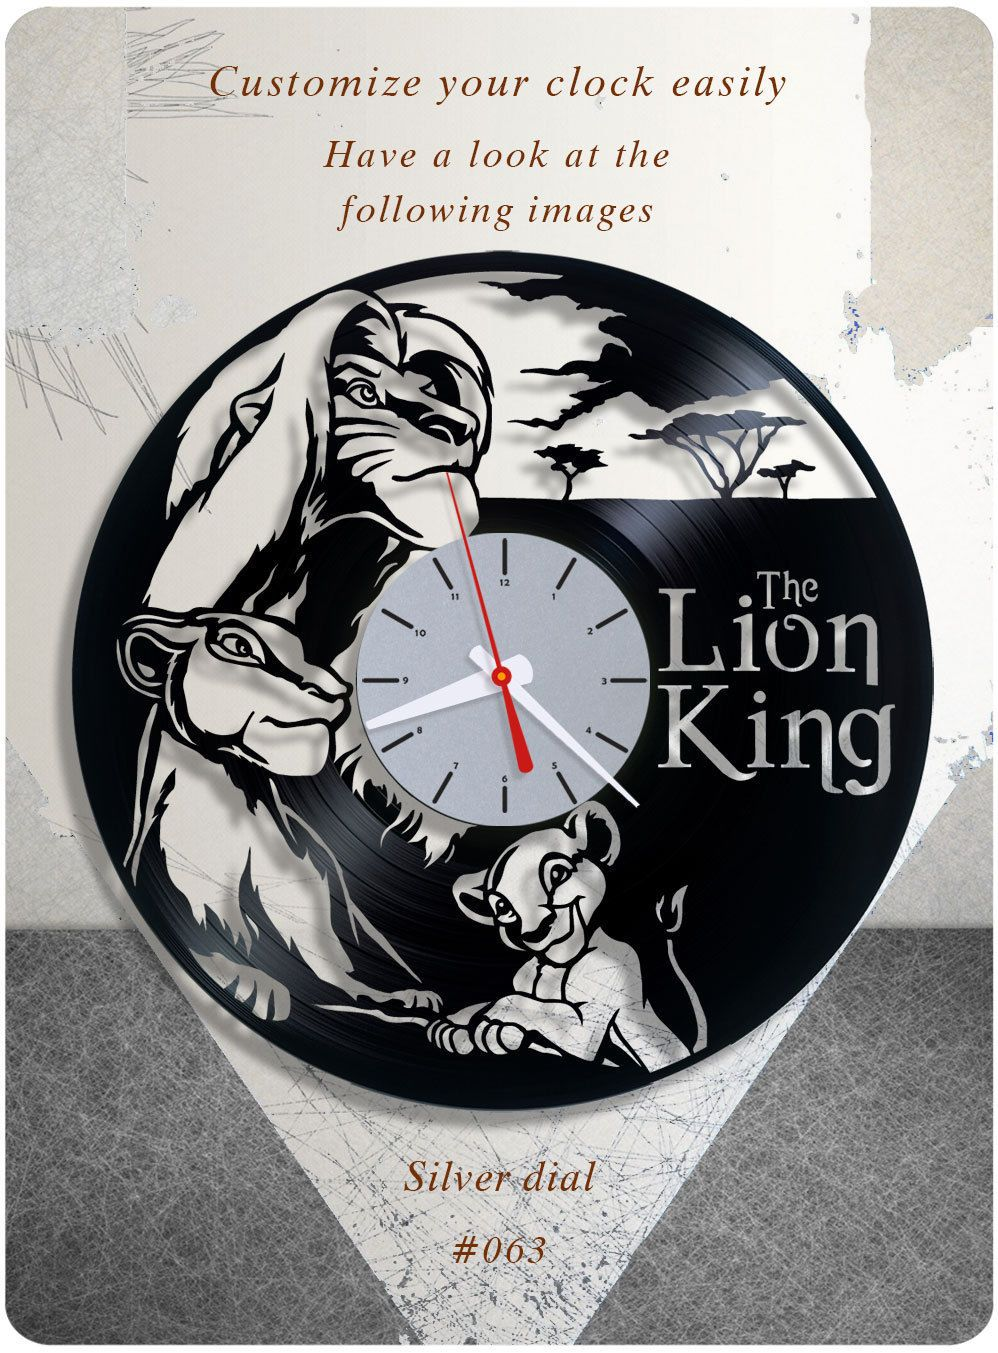 Birthday Gift Home Decorating Ideas Home Decor Holiday Gift Holiday Present Disney Lionking Lion The K Vinyl Record Clock Record Clock Vinyl Record Art